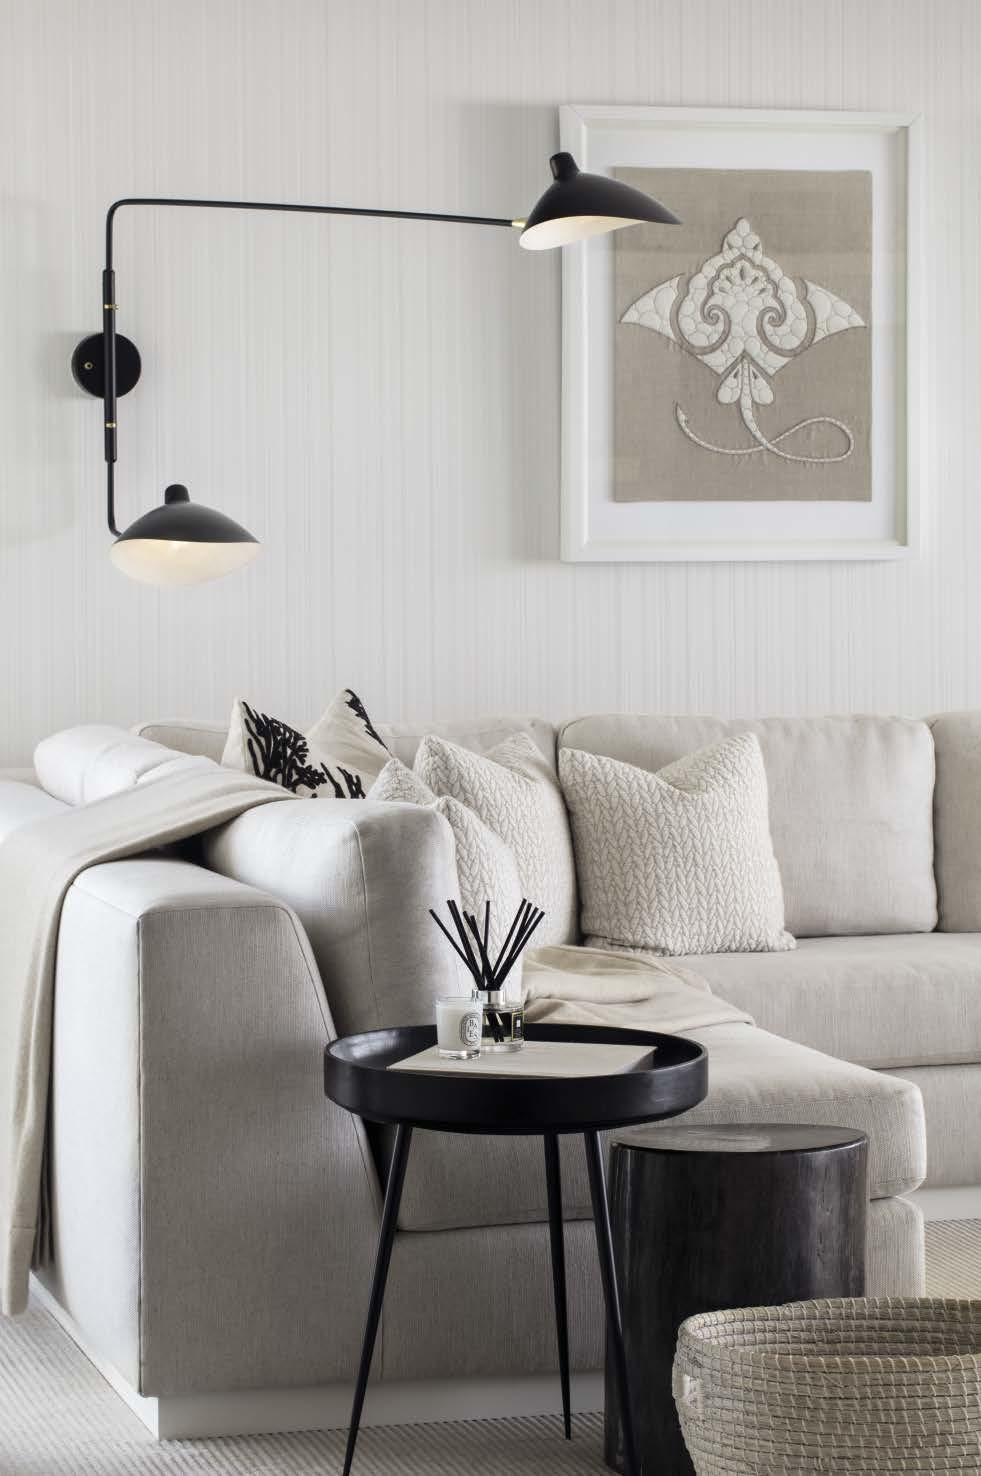 In the living room, a sconce by Serge Mouille contrasts with the Phillip Jeffries wallpaper. The side tables are by Fineline (petrified wood) and Mater. The sofa was customised with a Dedar fabric.